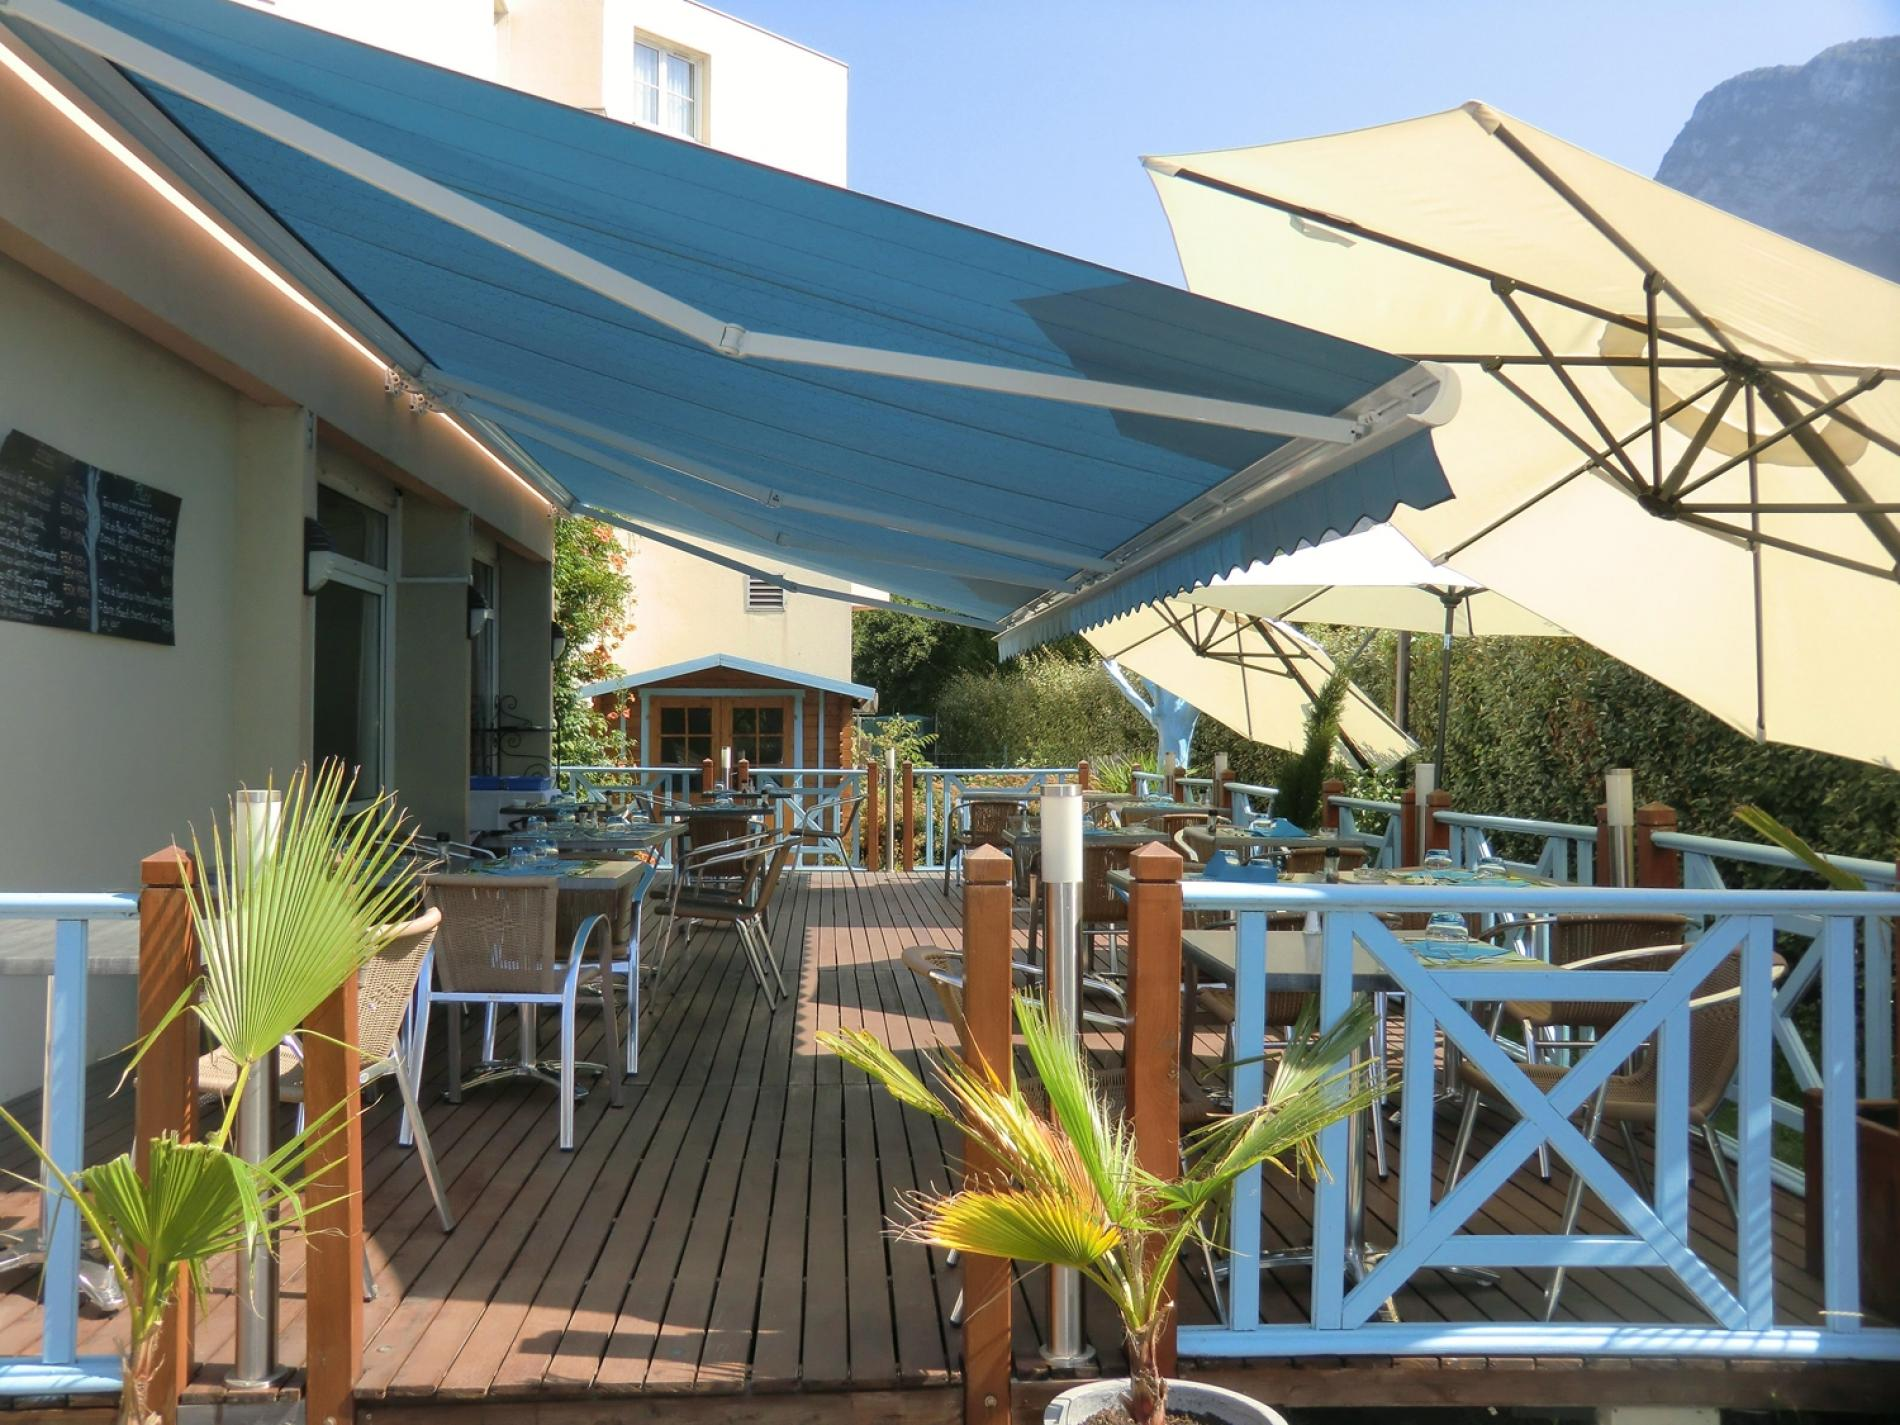 Hotel restaurant with swimming pool Grenoble Nord